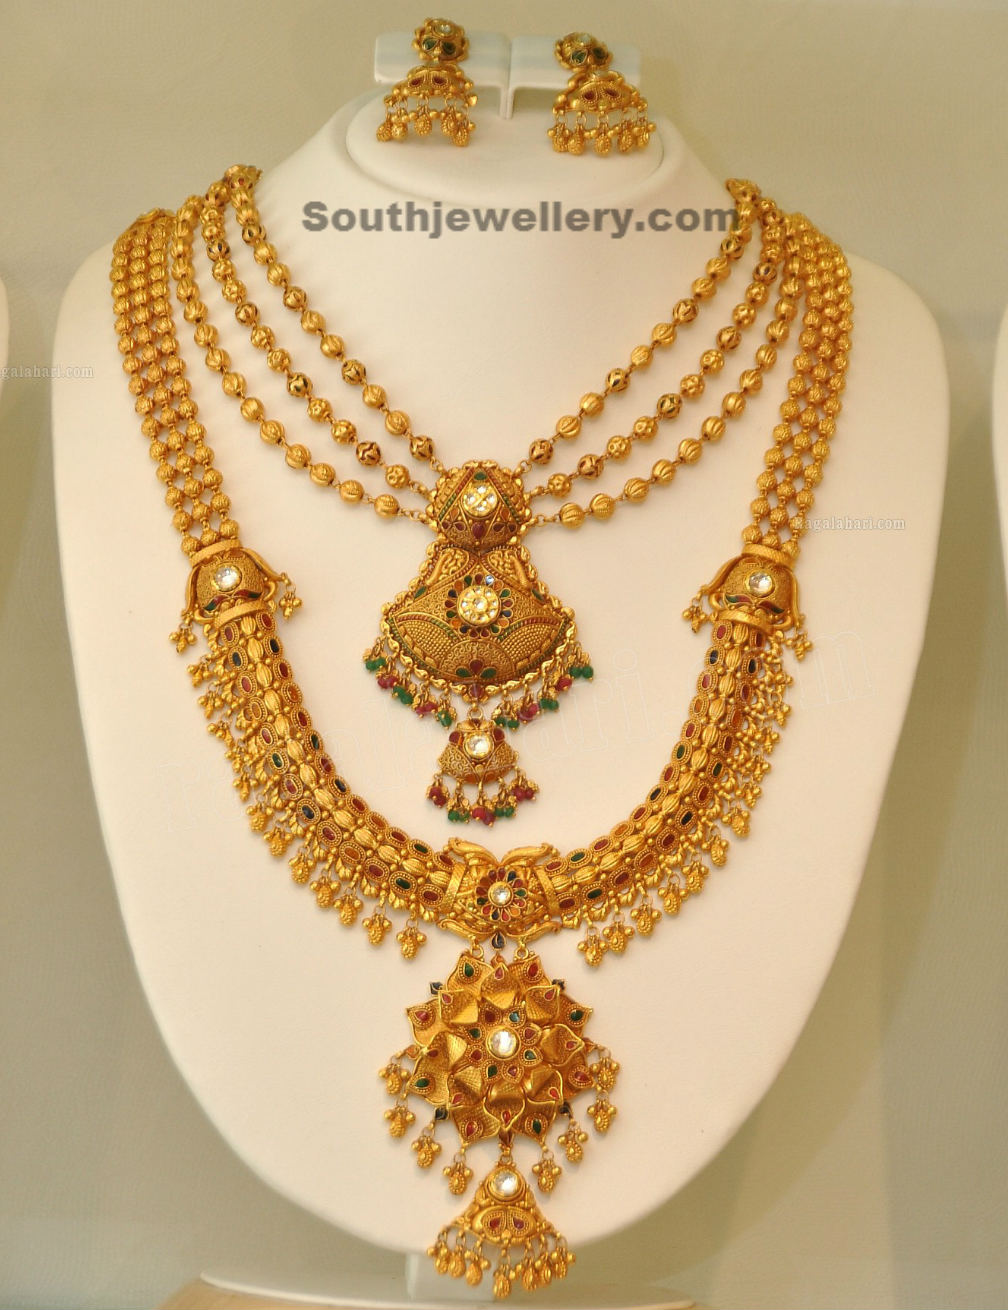 Gold Jewellery by Khazana - Jewellery Designs